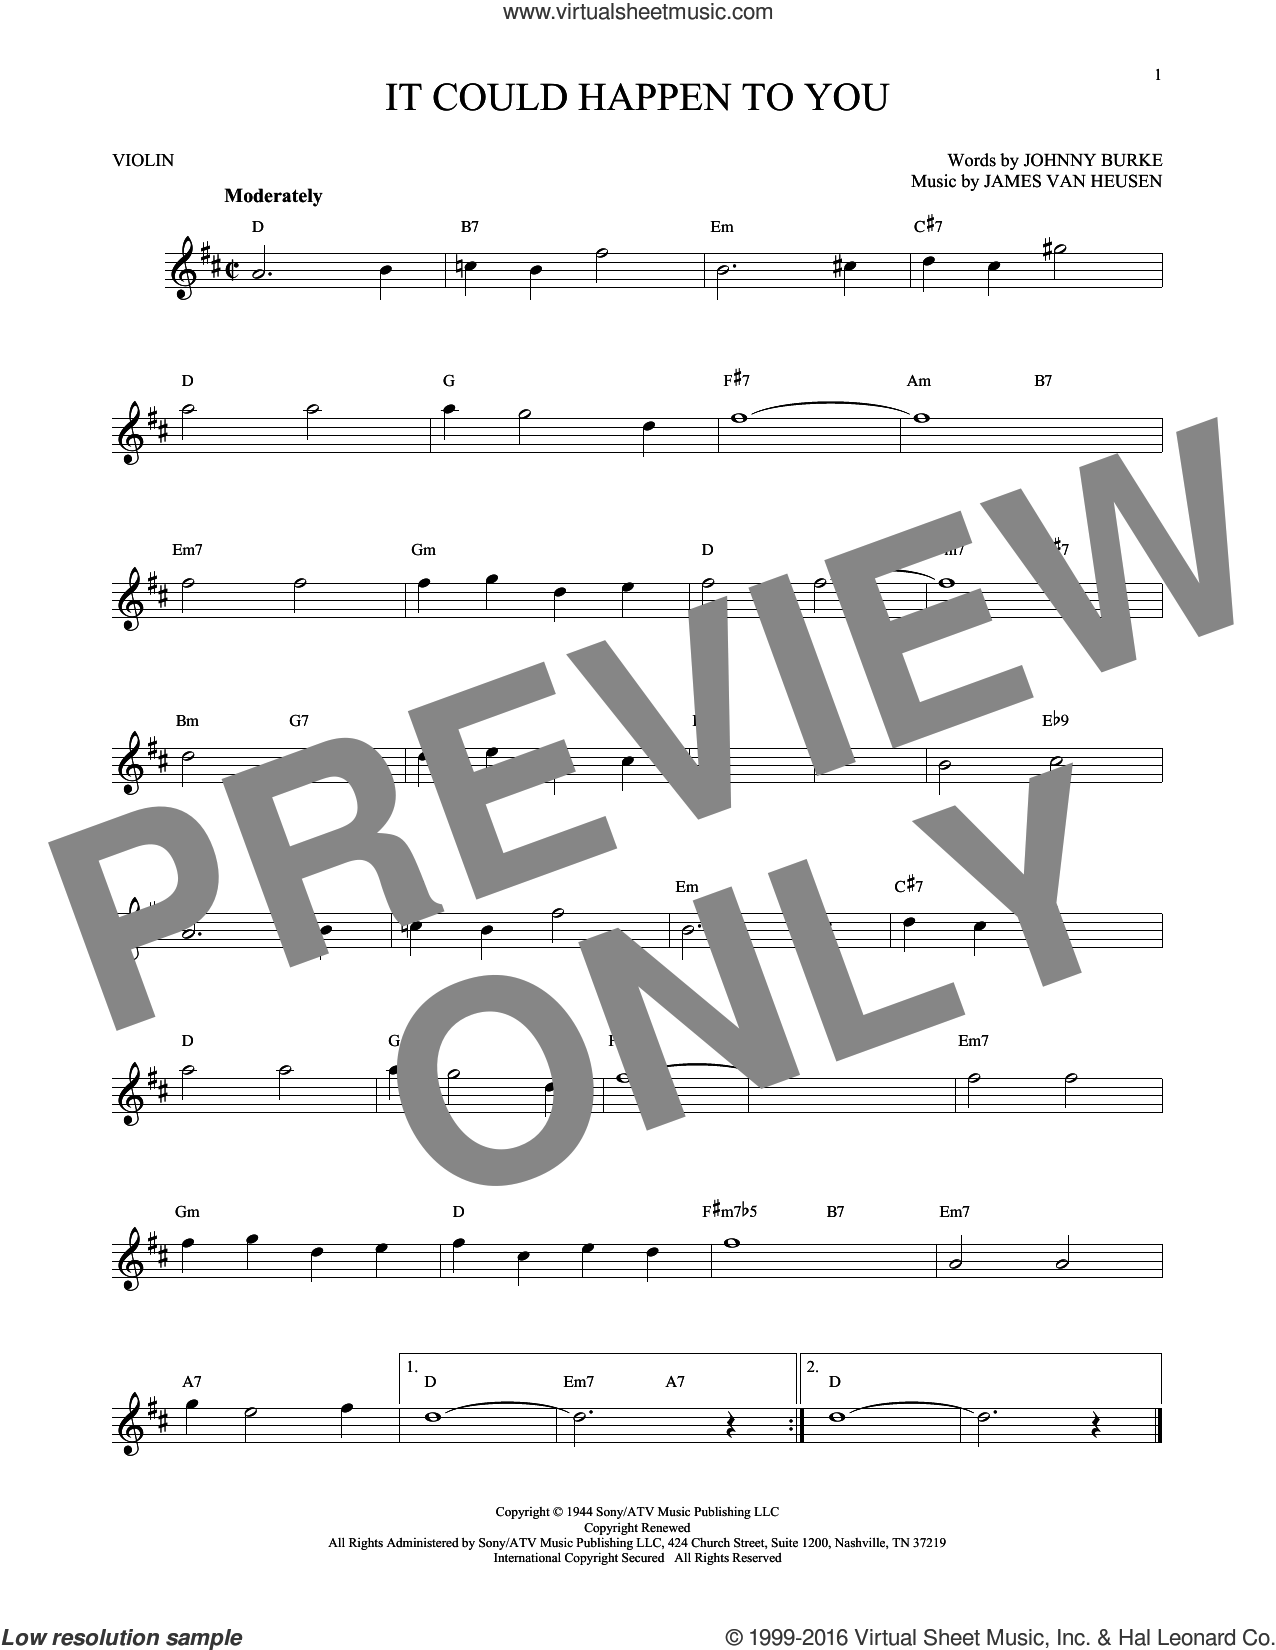 It Could Happen To You sheet music for violin solo by Jimmy van Heusen, June Christy and John Burke, intermediate skill level